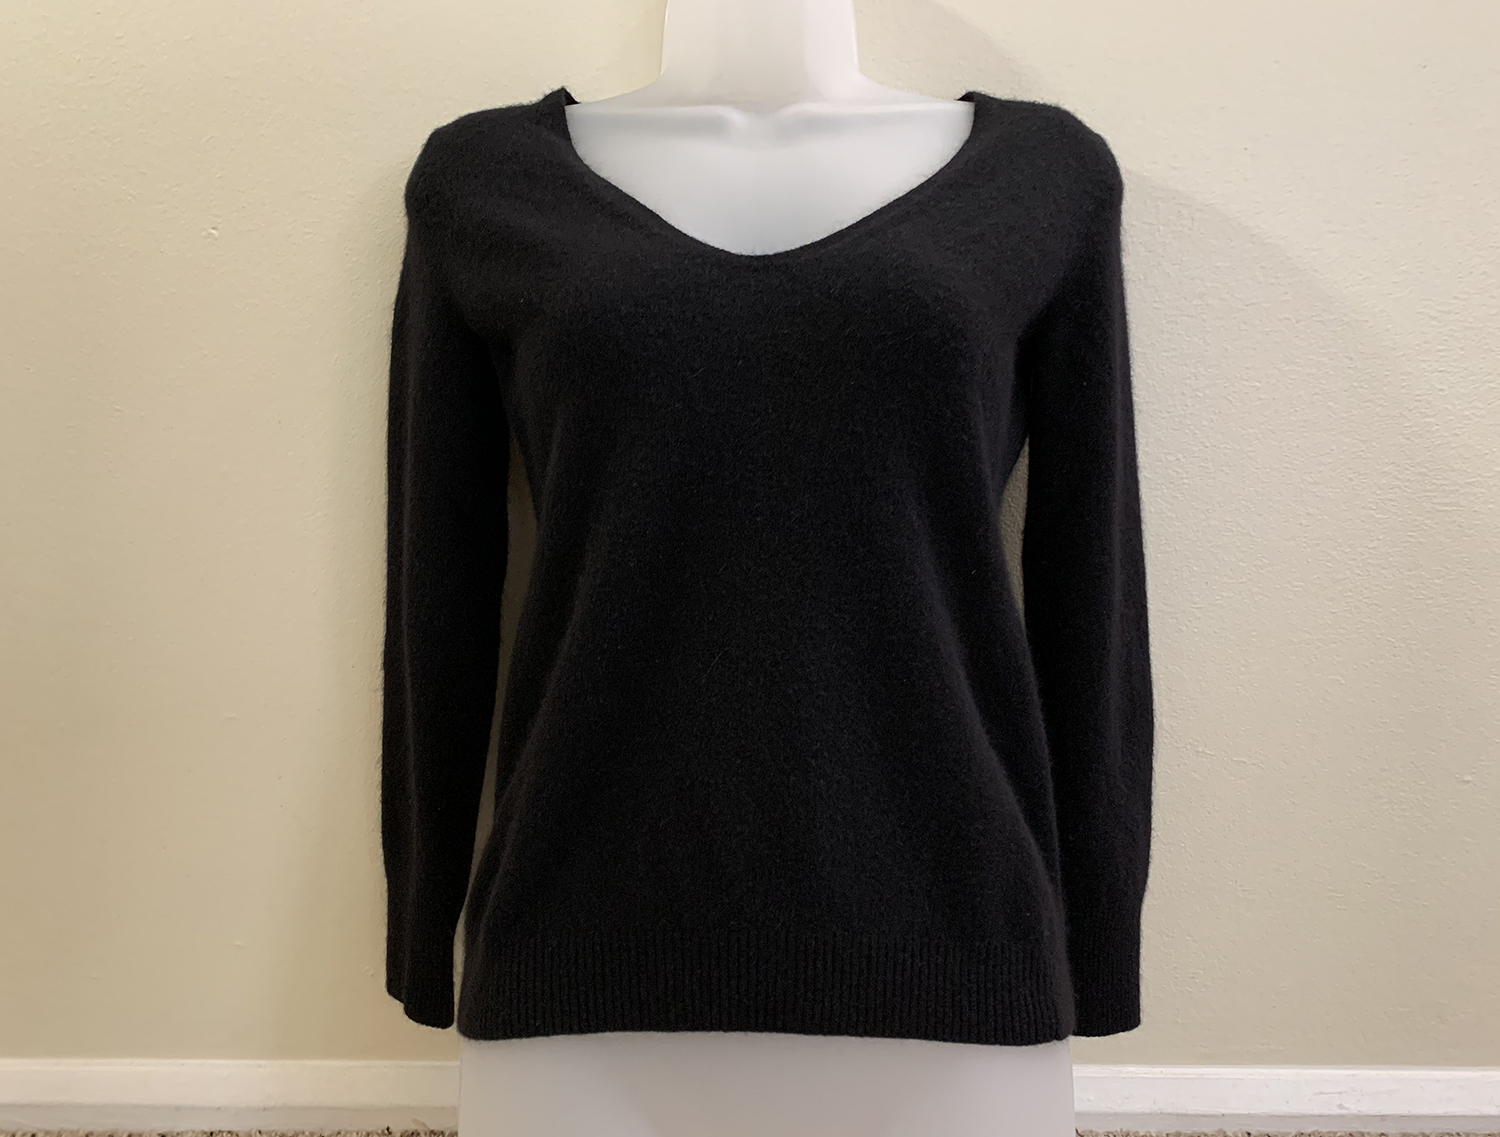 J. Crew Womens Merino Wool Blend Black V Neck Sweater Size S